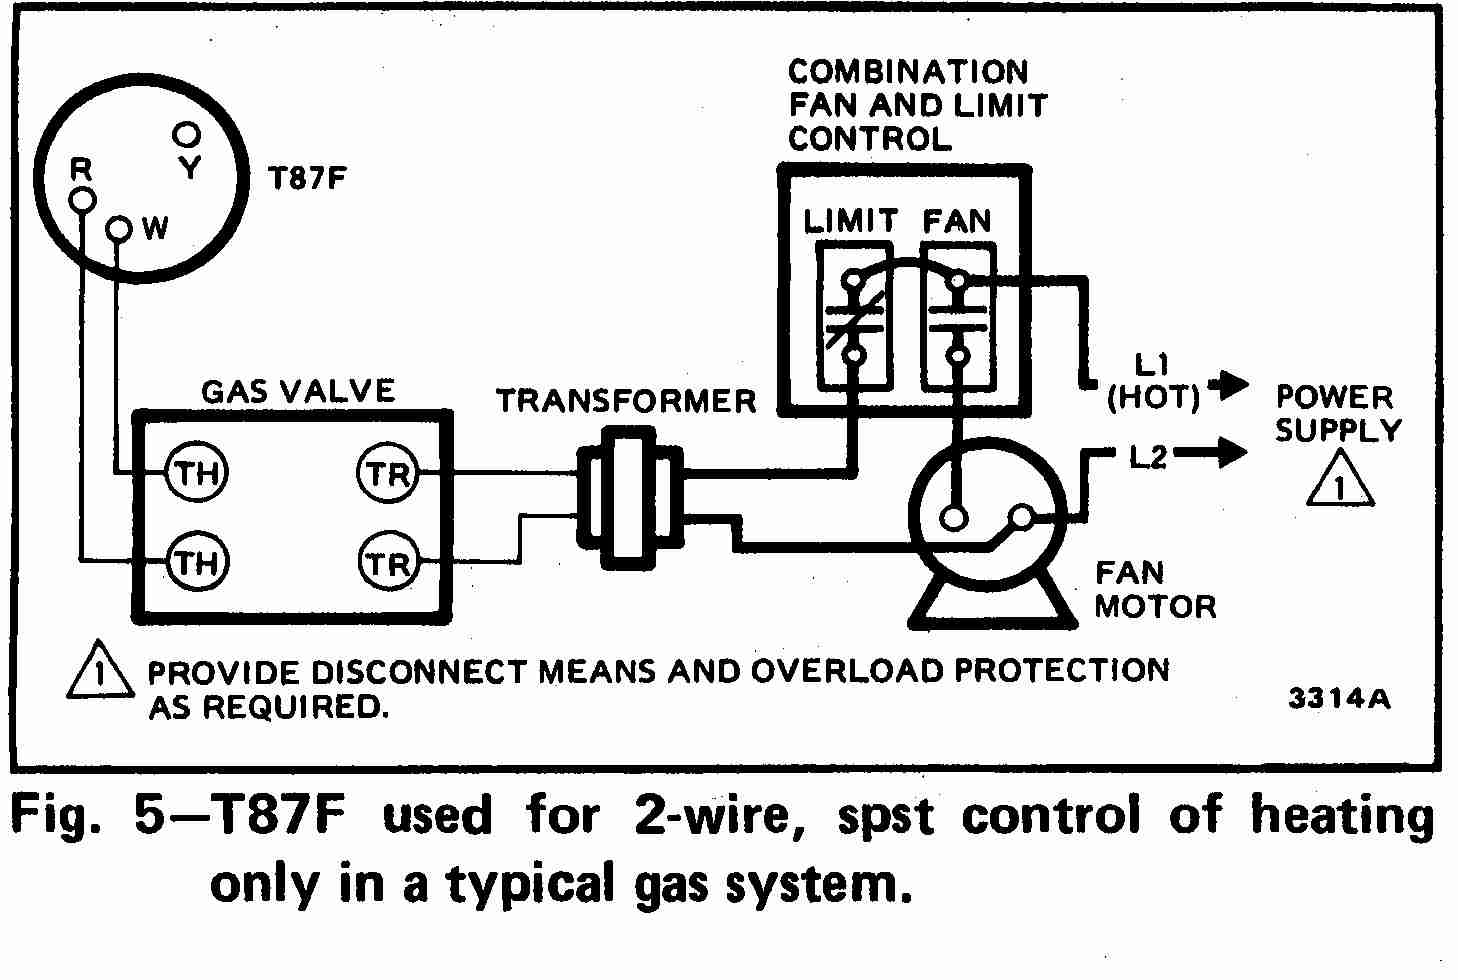 TT_T87F_0002_2Wg_DJF room thermostat wiring diagrams for hvac systems zone valve wiring diagram at aneh.co